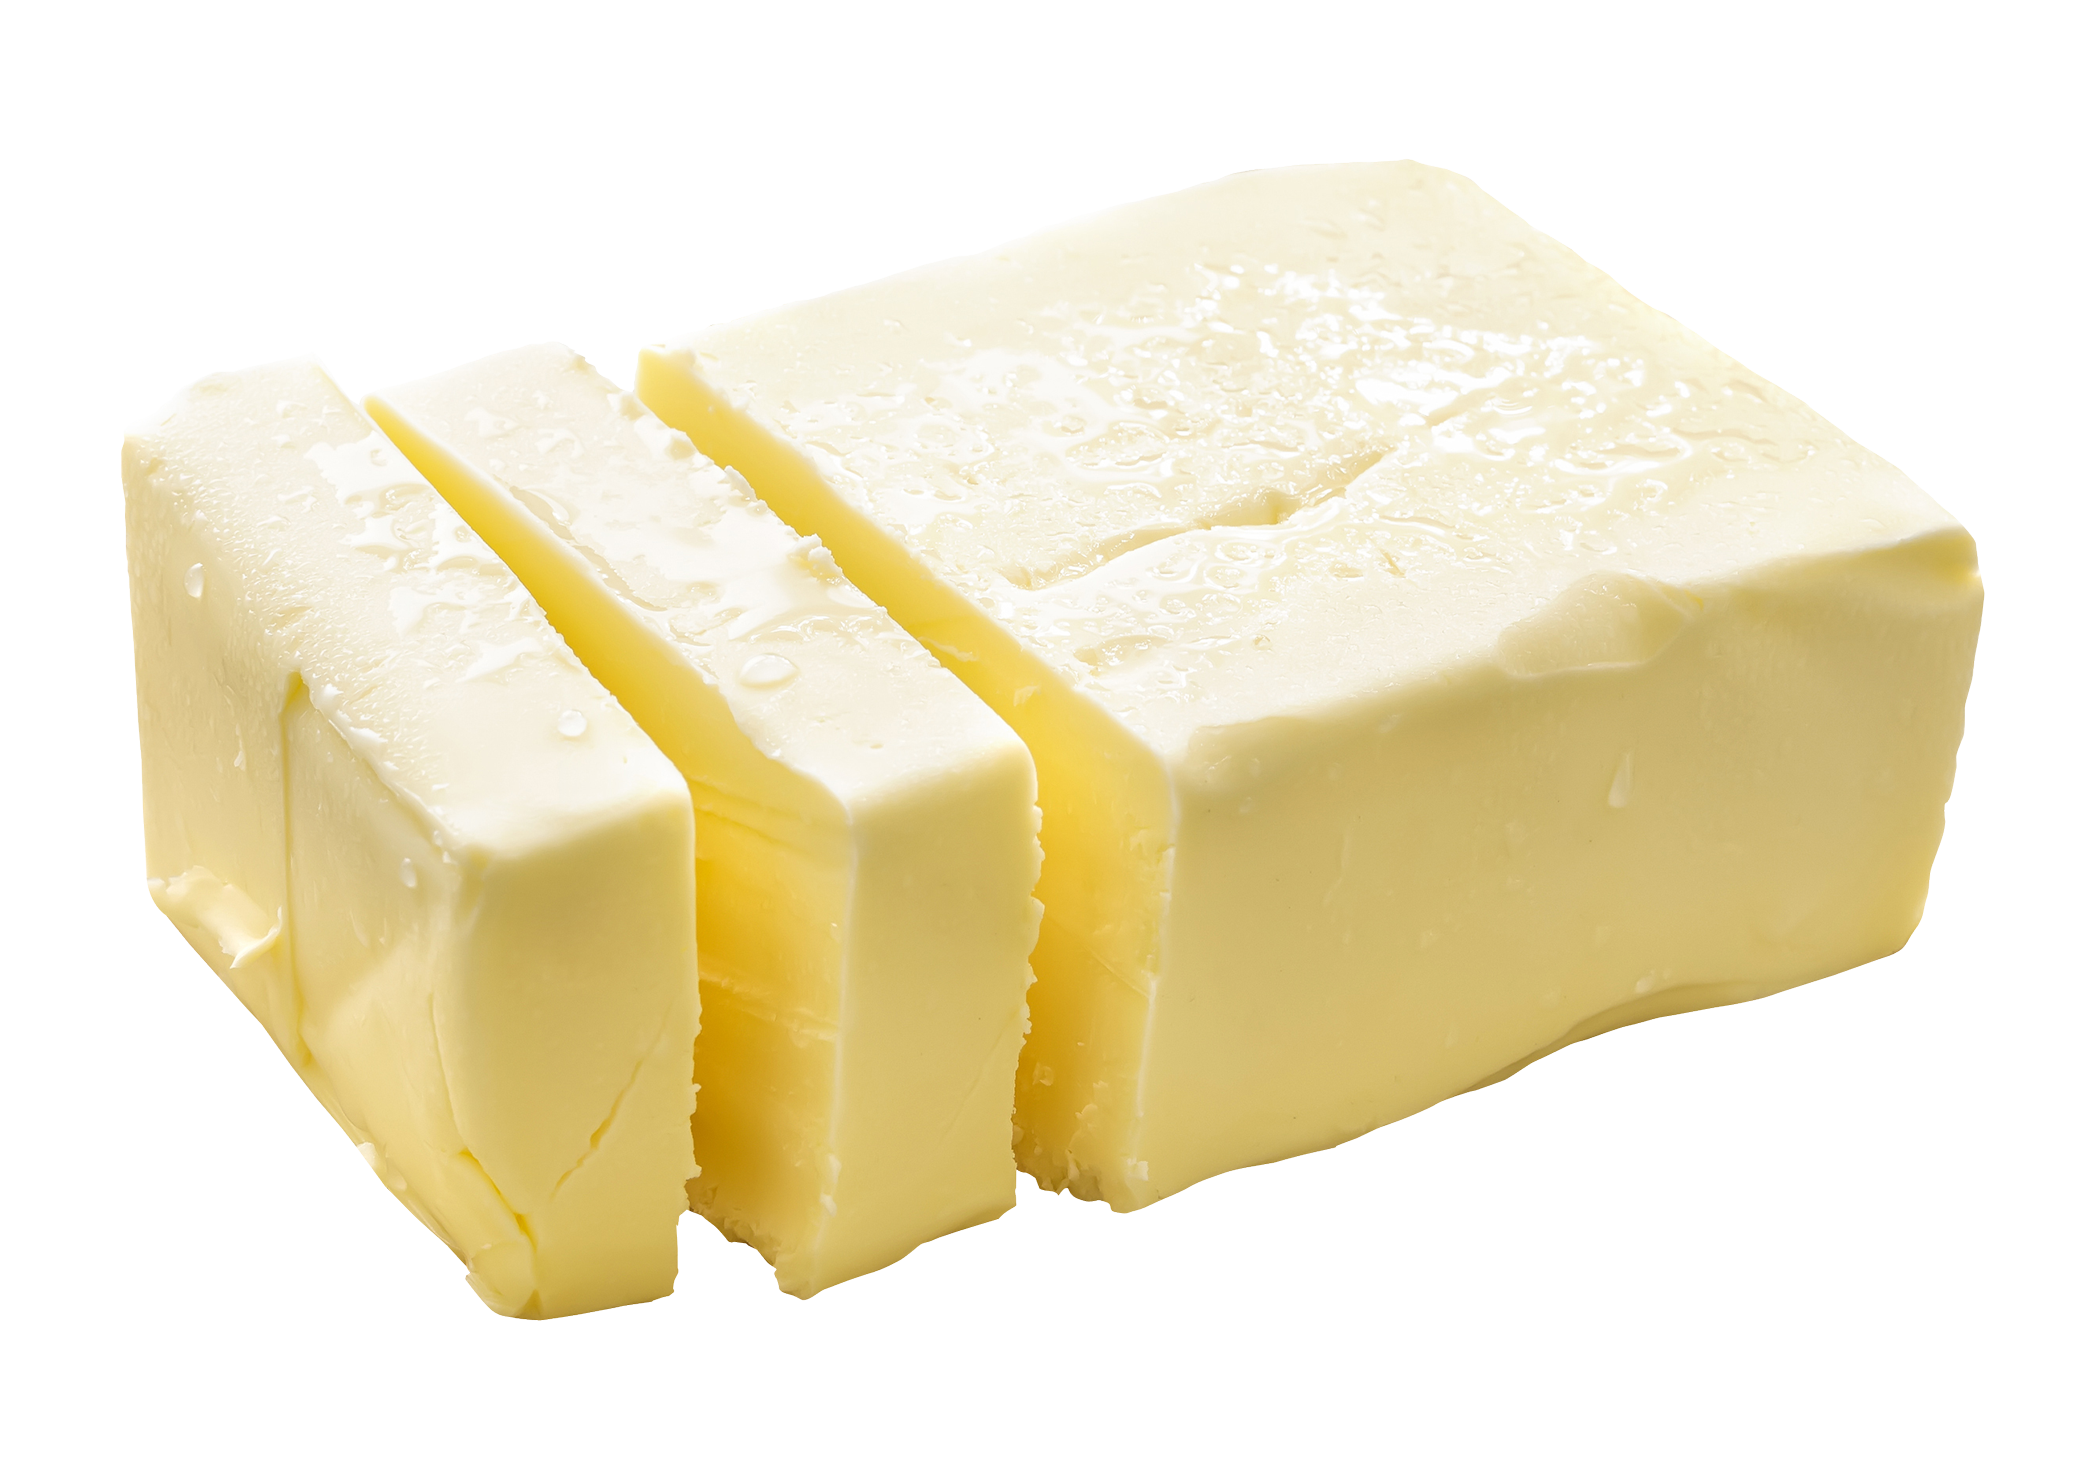 Butter PNG Image.